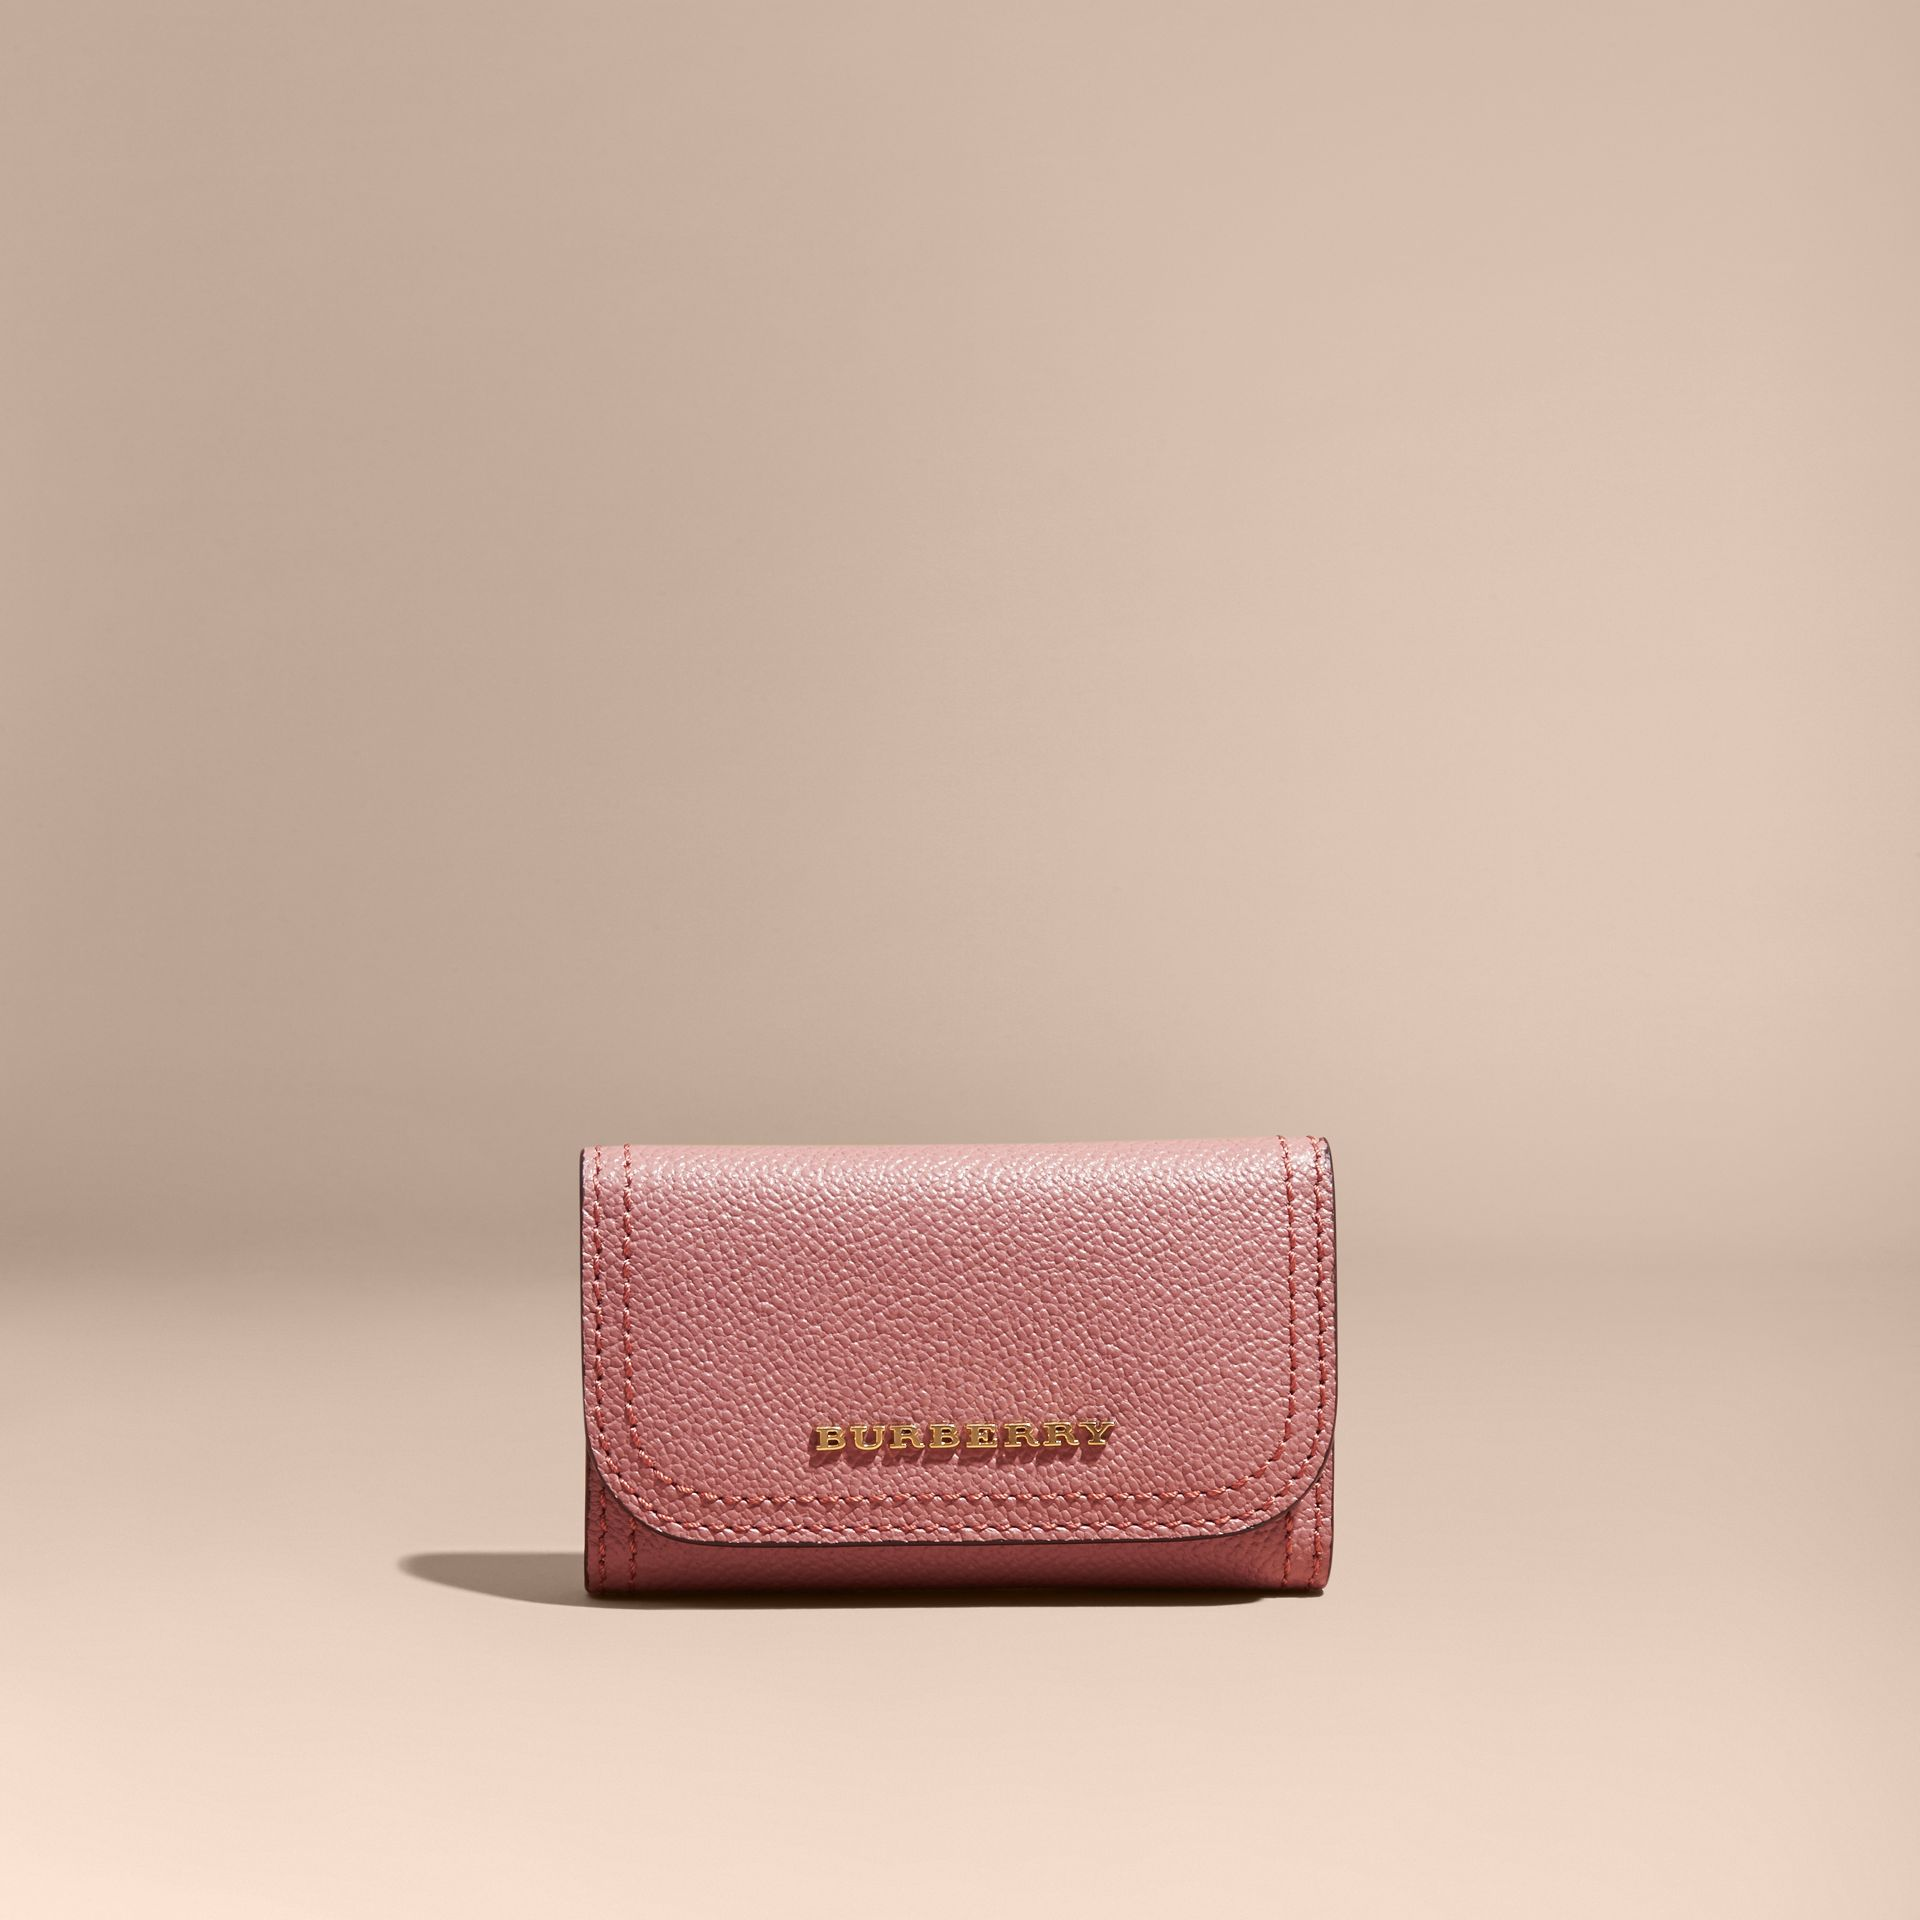 Grainy Leather Key Holder in Dusty Pink - Women | Burberry United States - gallery image 5